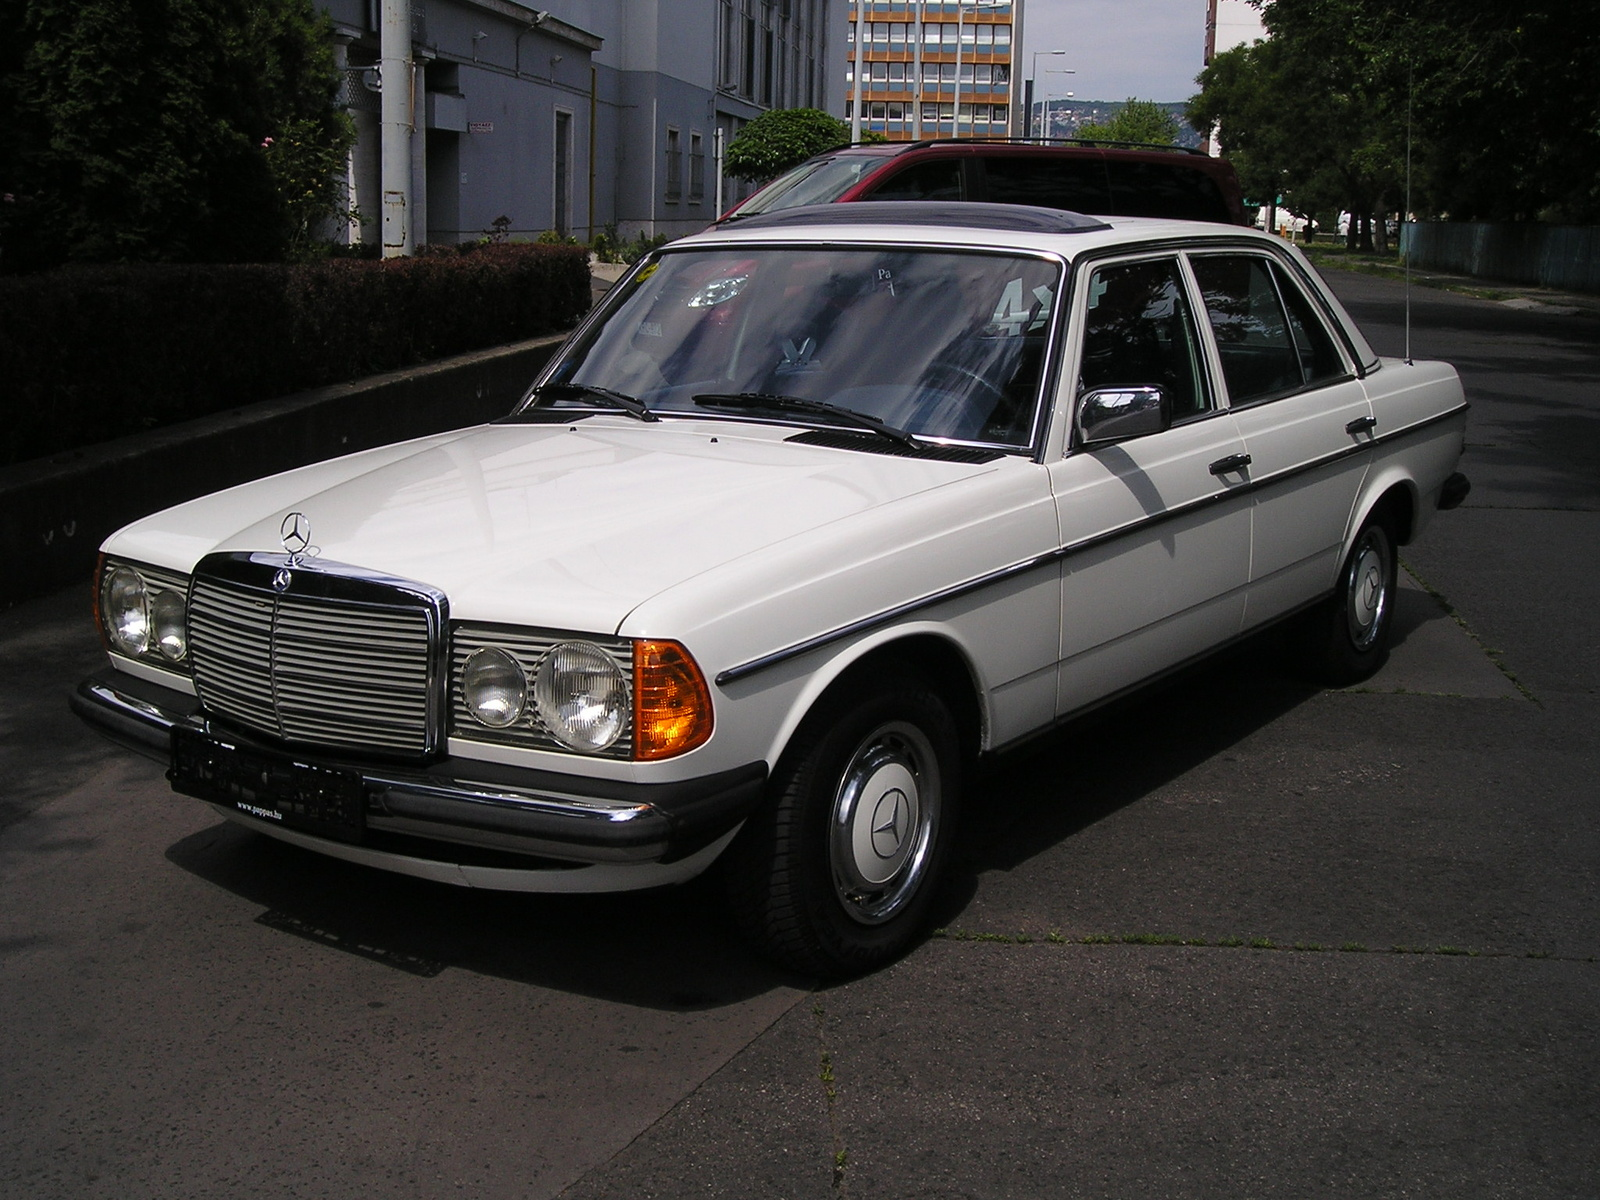 1986 mercedes benz 280 pictures cargurus